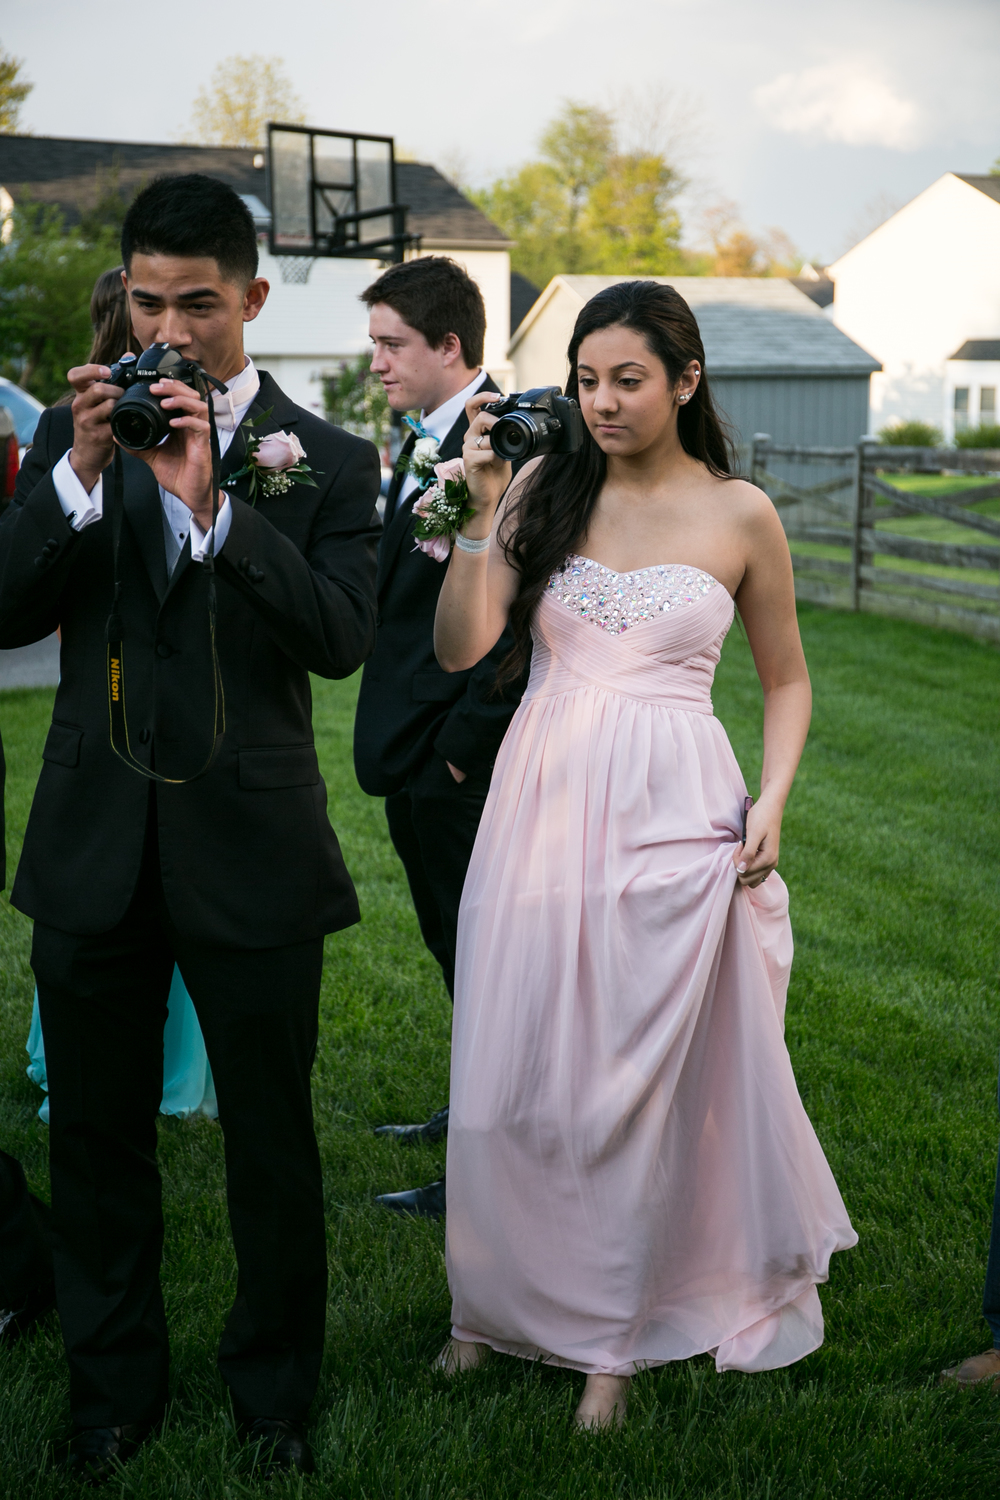 Mount-De-Sales-Pre-Prom-May-2014-79.jpg